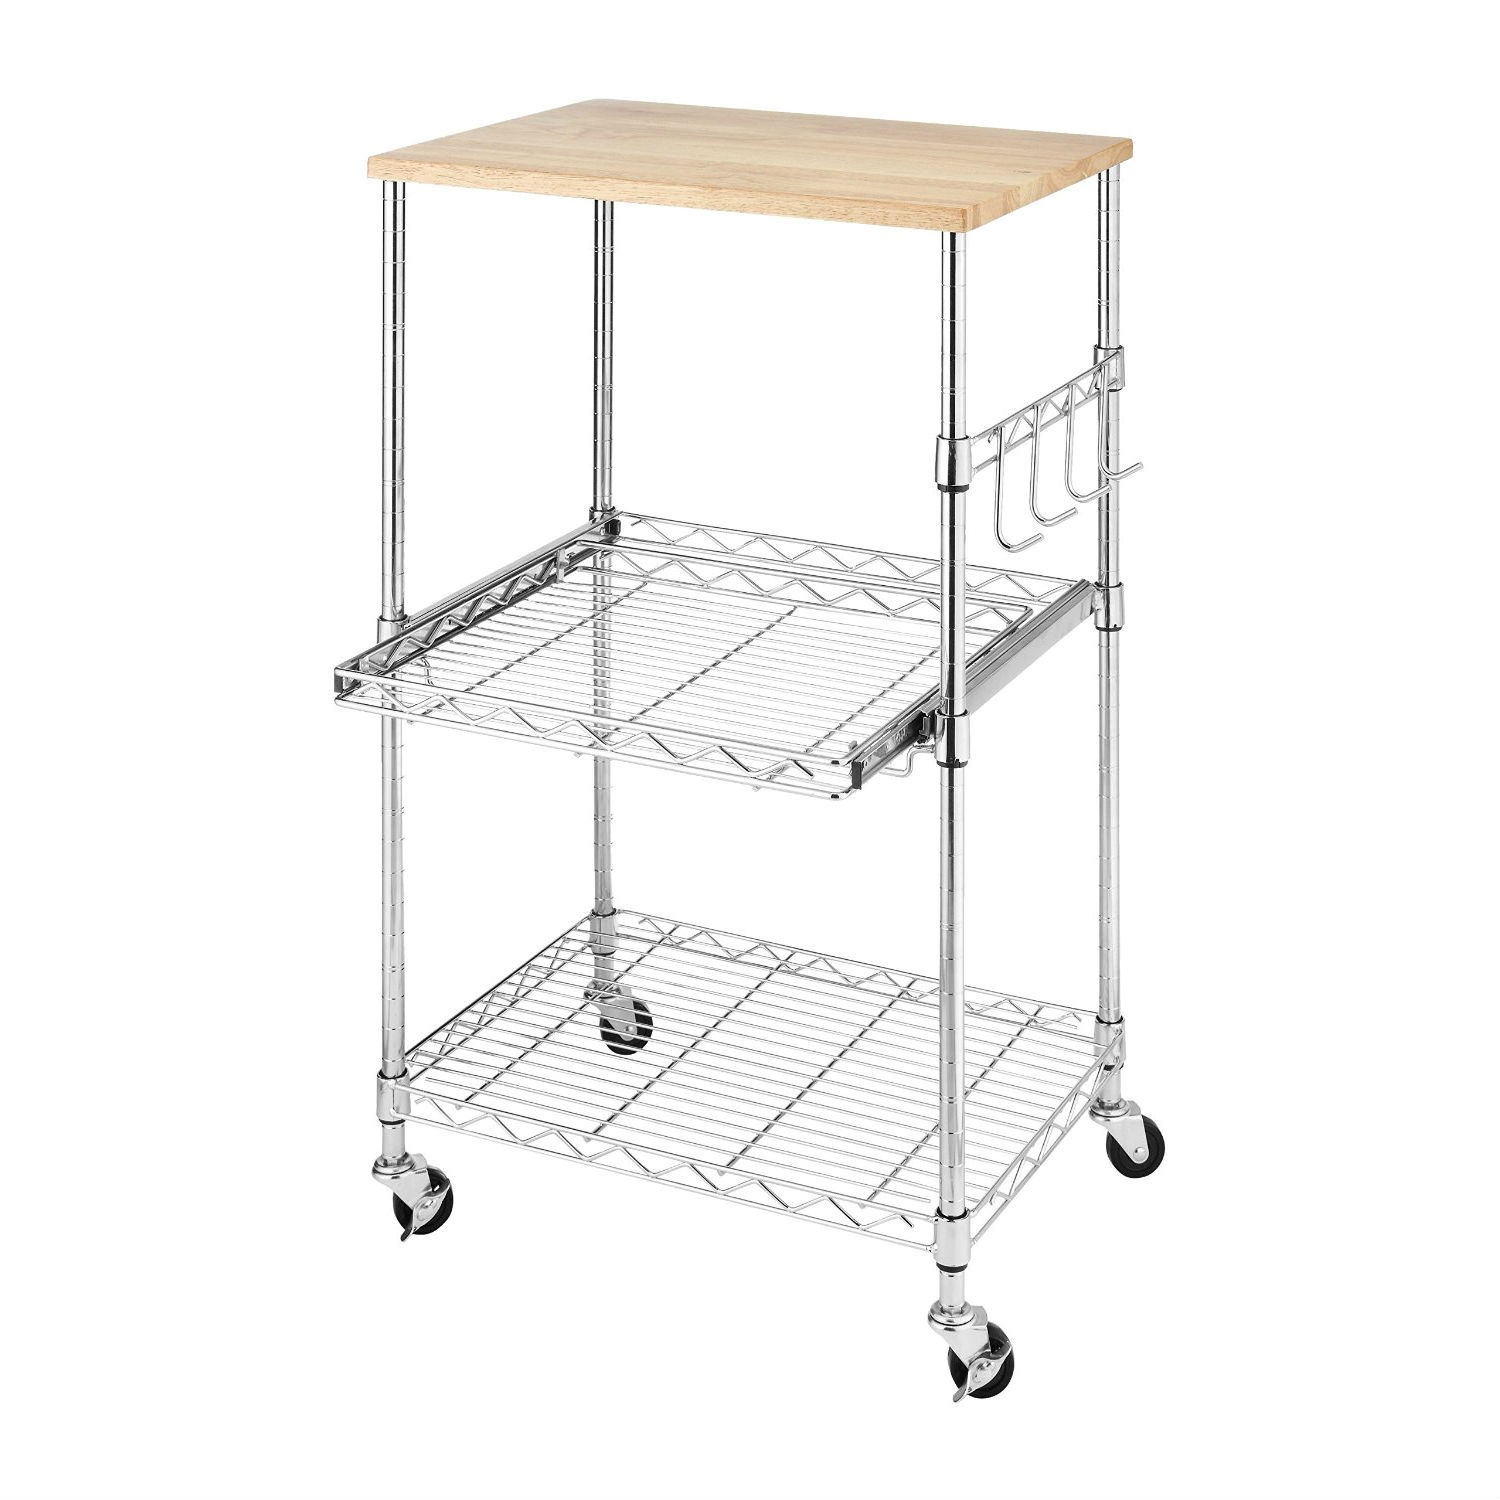 kitchen work portable table wire metal drawers outdoor with cabinet small rolling trolley island wood cart